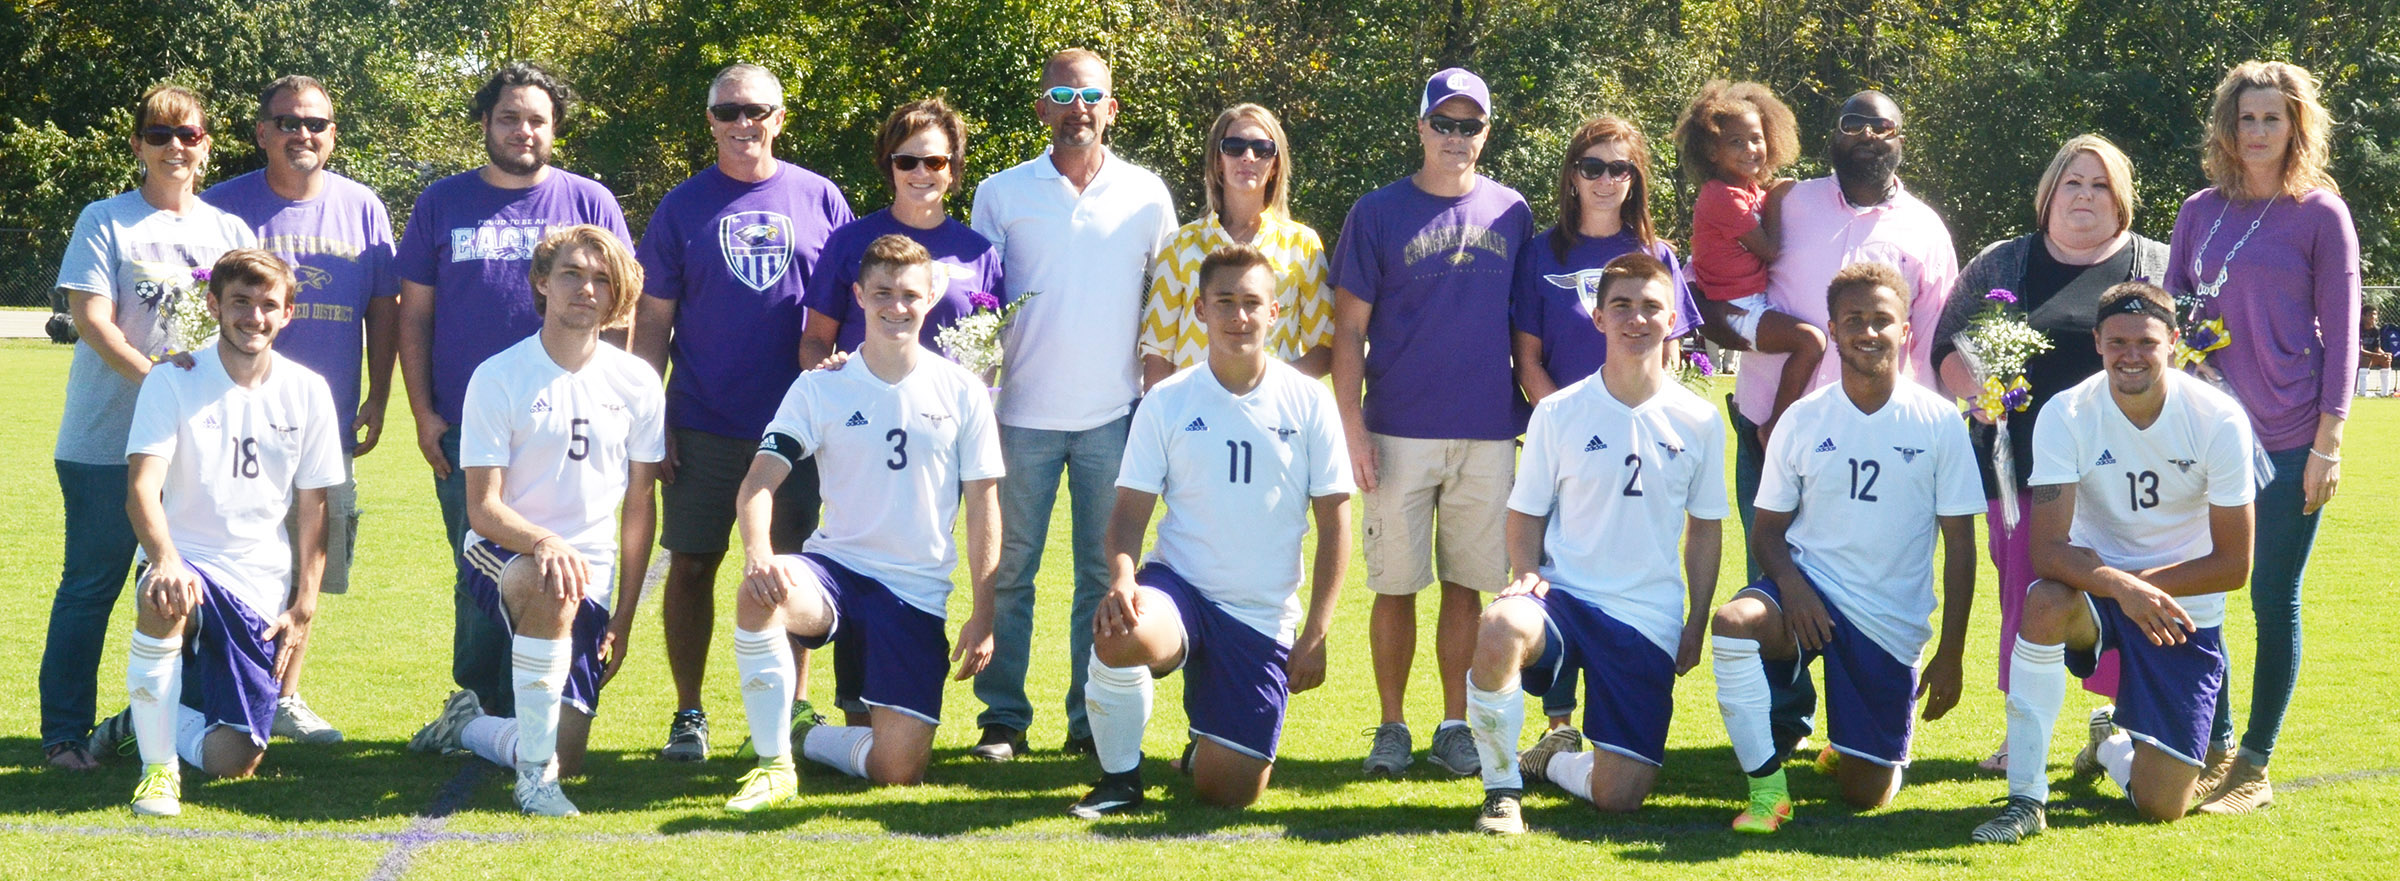 CHS senior soccer players were recently honored. They are pictured with their families. From left are Jackson Hunt, Christian Berry, Bryce Richardson, Cody Davis, Cass Kidwell, Ethan Lay and Logan Cole.